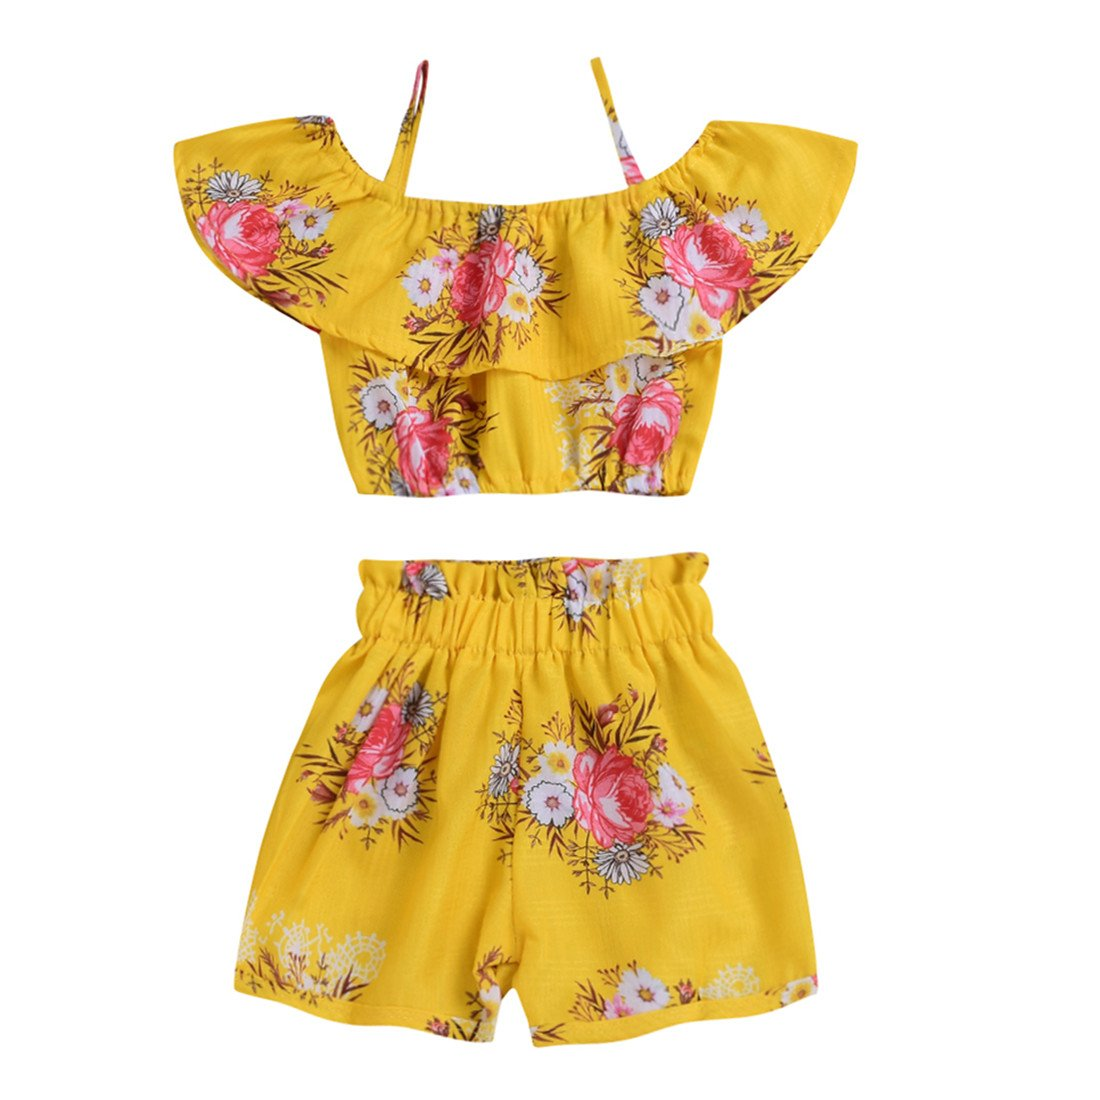 Toddler Baby Girl Floral Halter Ruffled Outfits Set Strap Crop Tops+Short Pants 2 PCS Clothes Set LuoLee